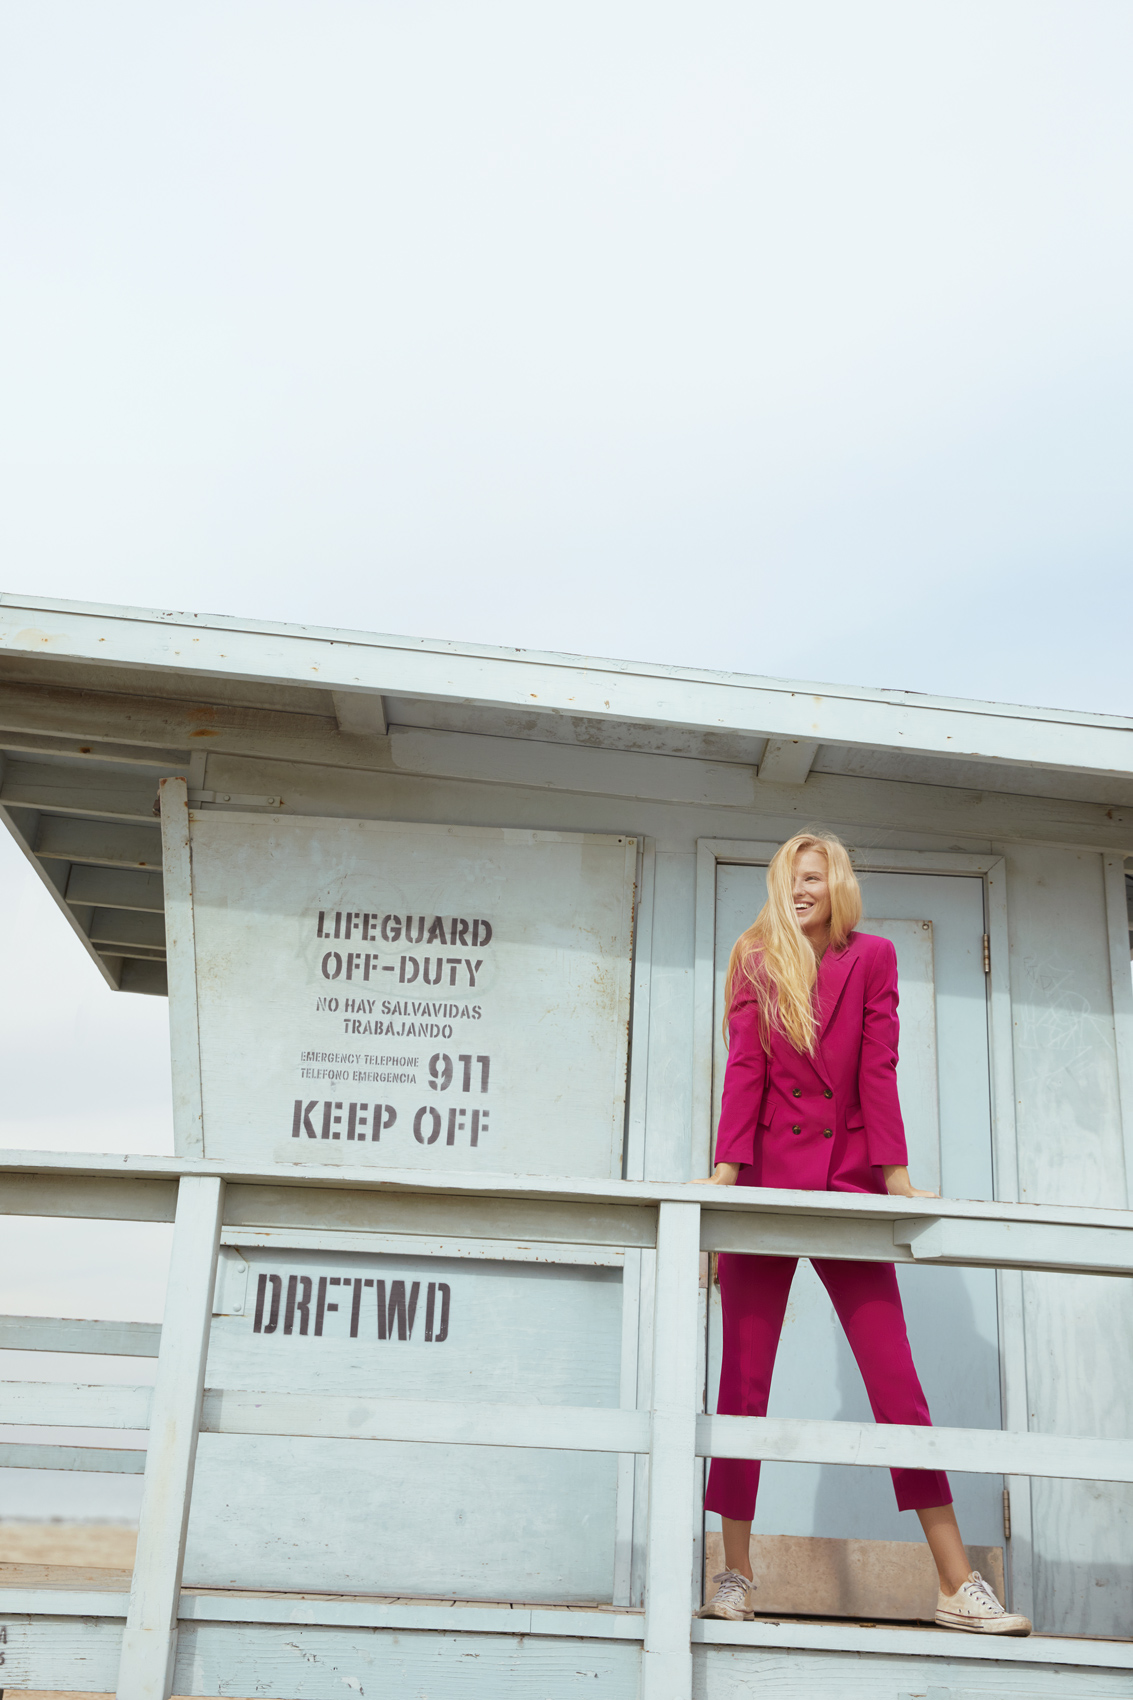 Girl in a pink suit standing on a lifeguard tower. Kim Genevieve Los Angeles Lifestyle Photographer